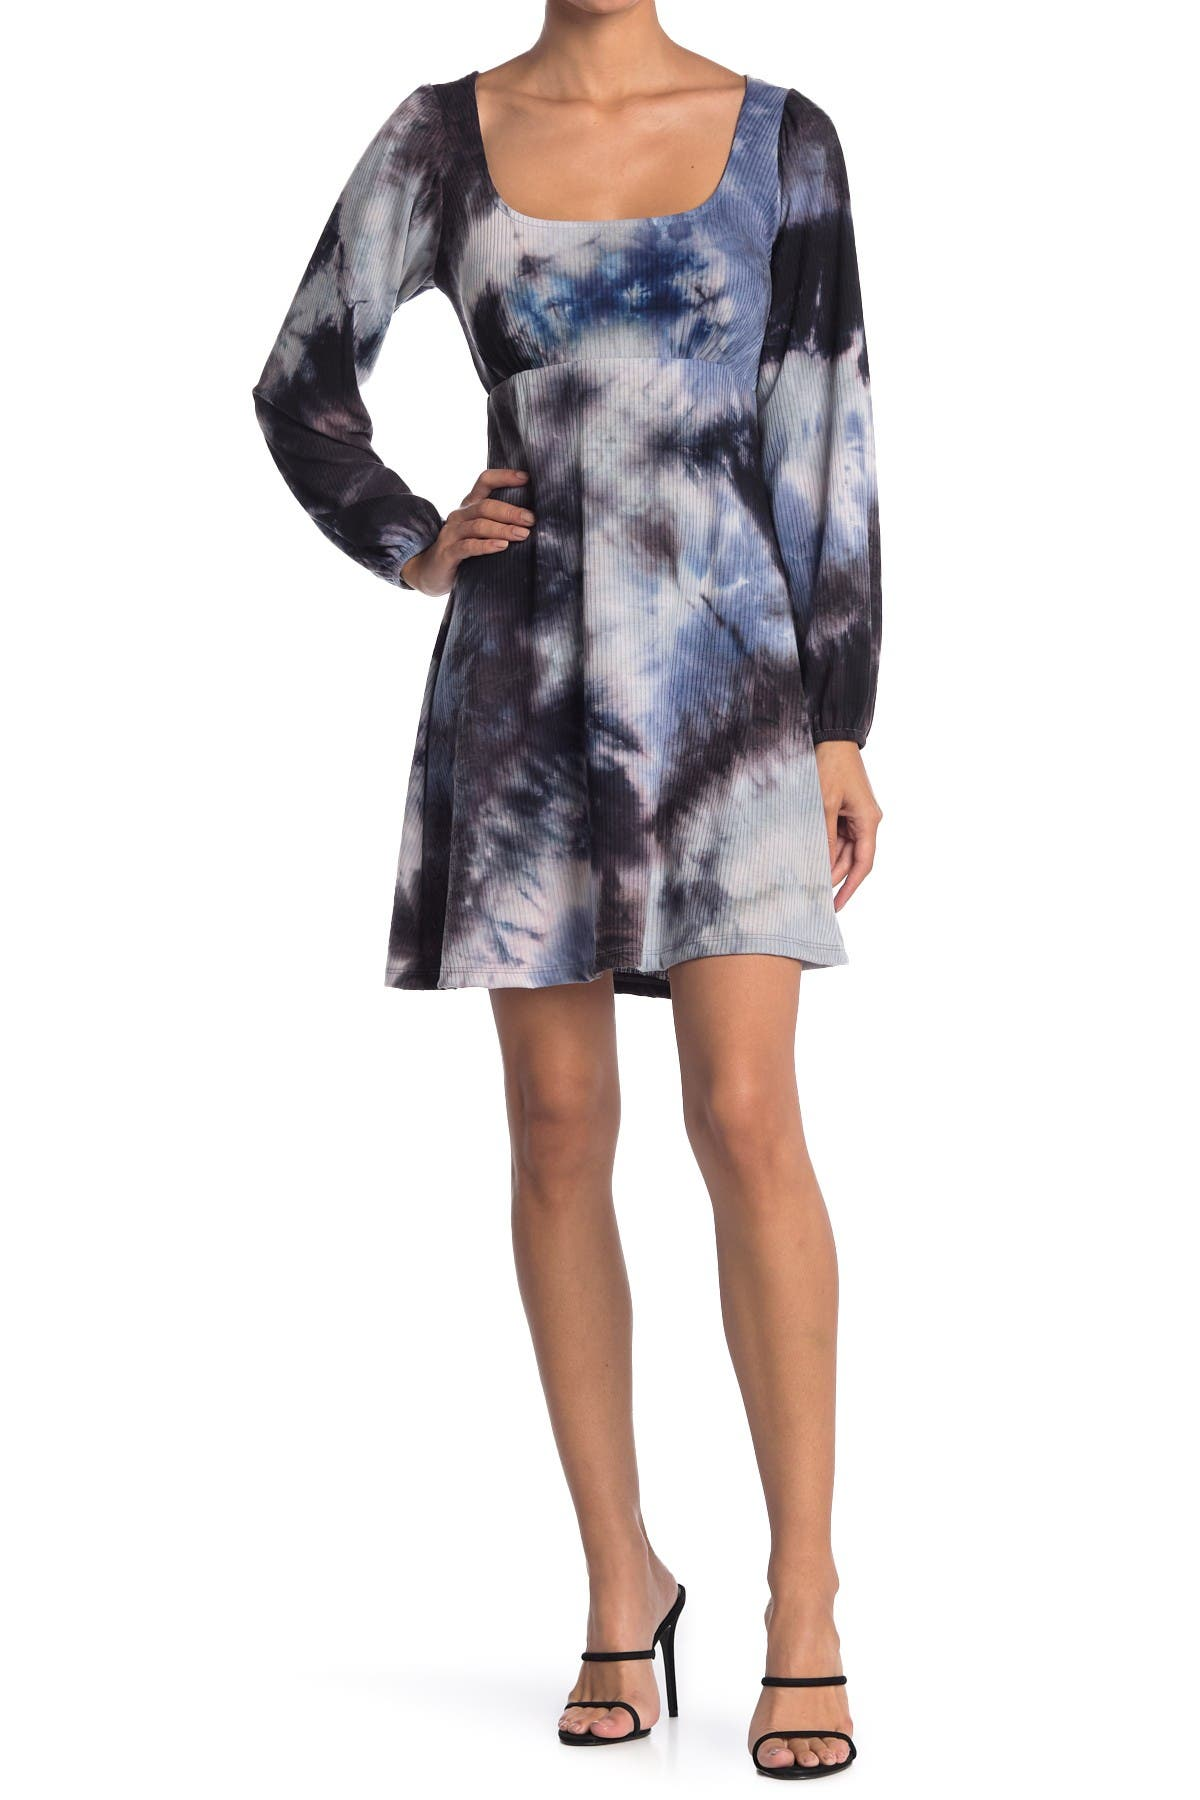 Image of KENEDIK Ribbed Knit Square Neck Tie Dye Dress